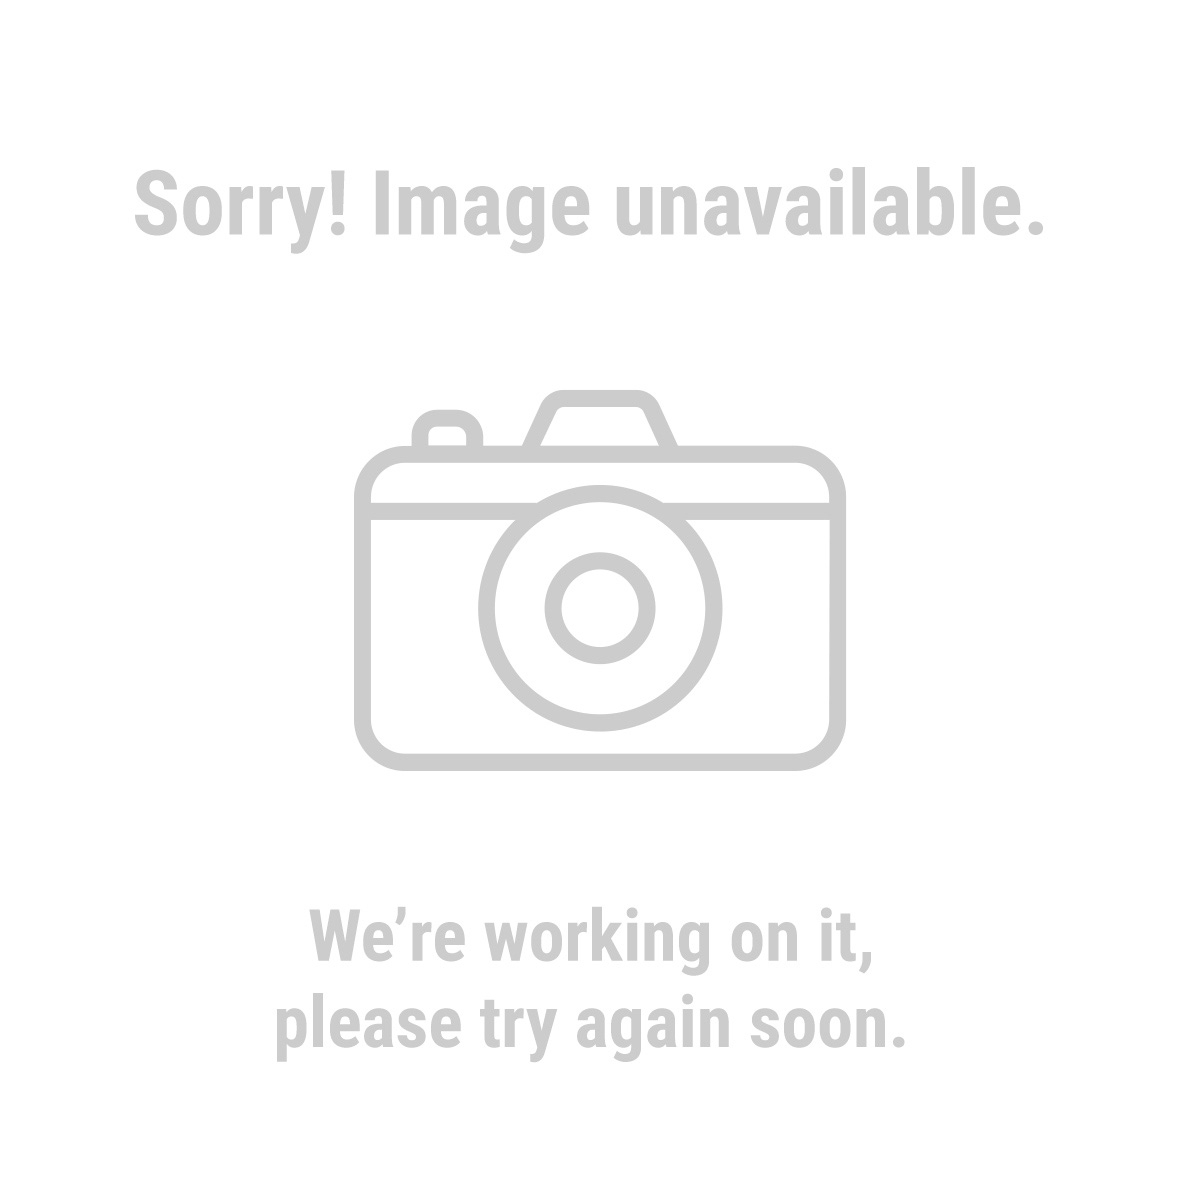 Central Pneumatic® 69434 1/5 Horsepower, 58 PSI PSI Airbrush Compressor and Airbrush Kit